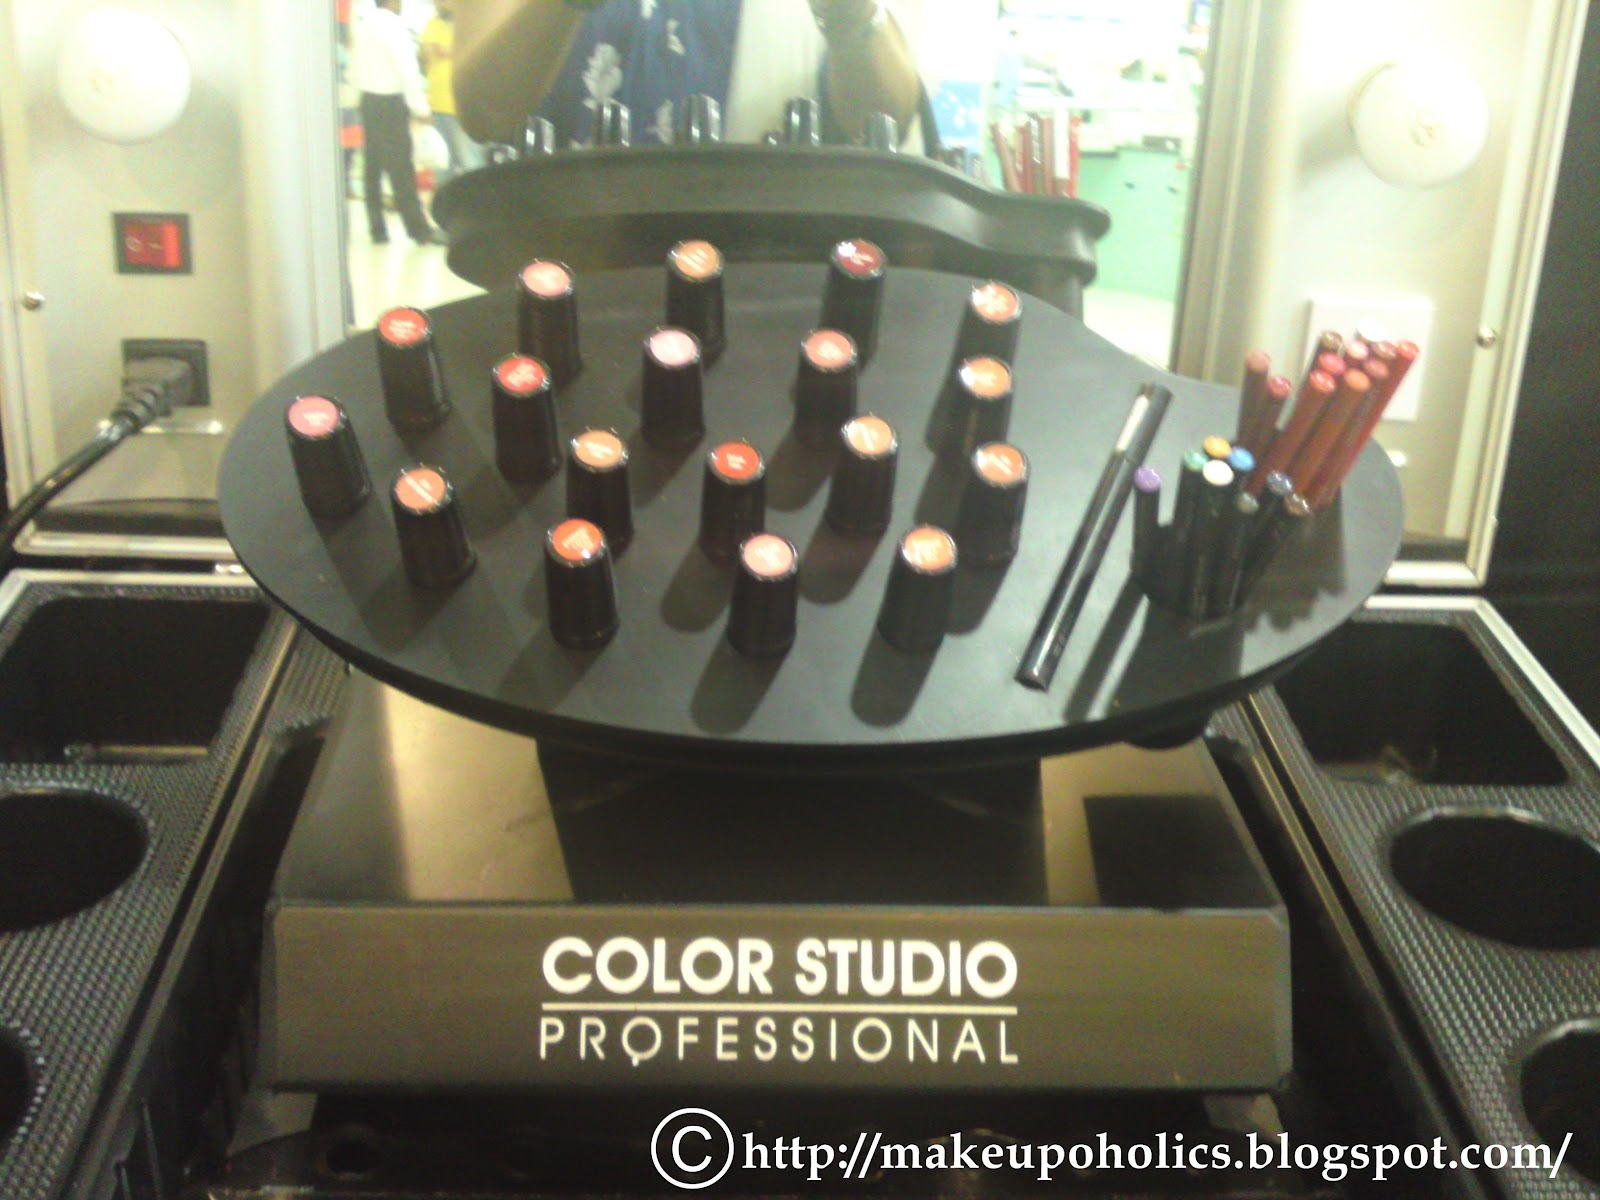 Color studio professional hyper star lahore activity for Nina g salon lahore